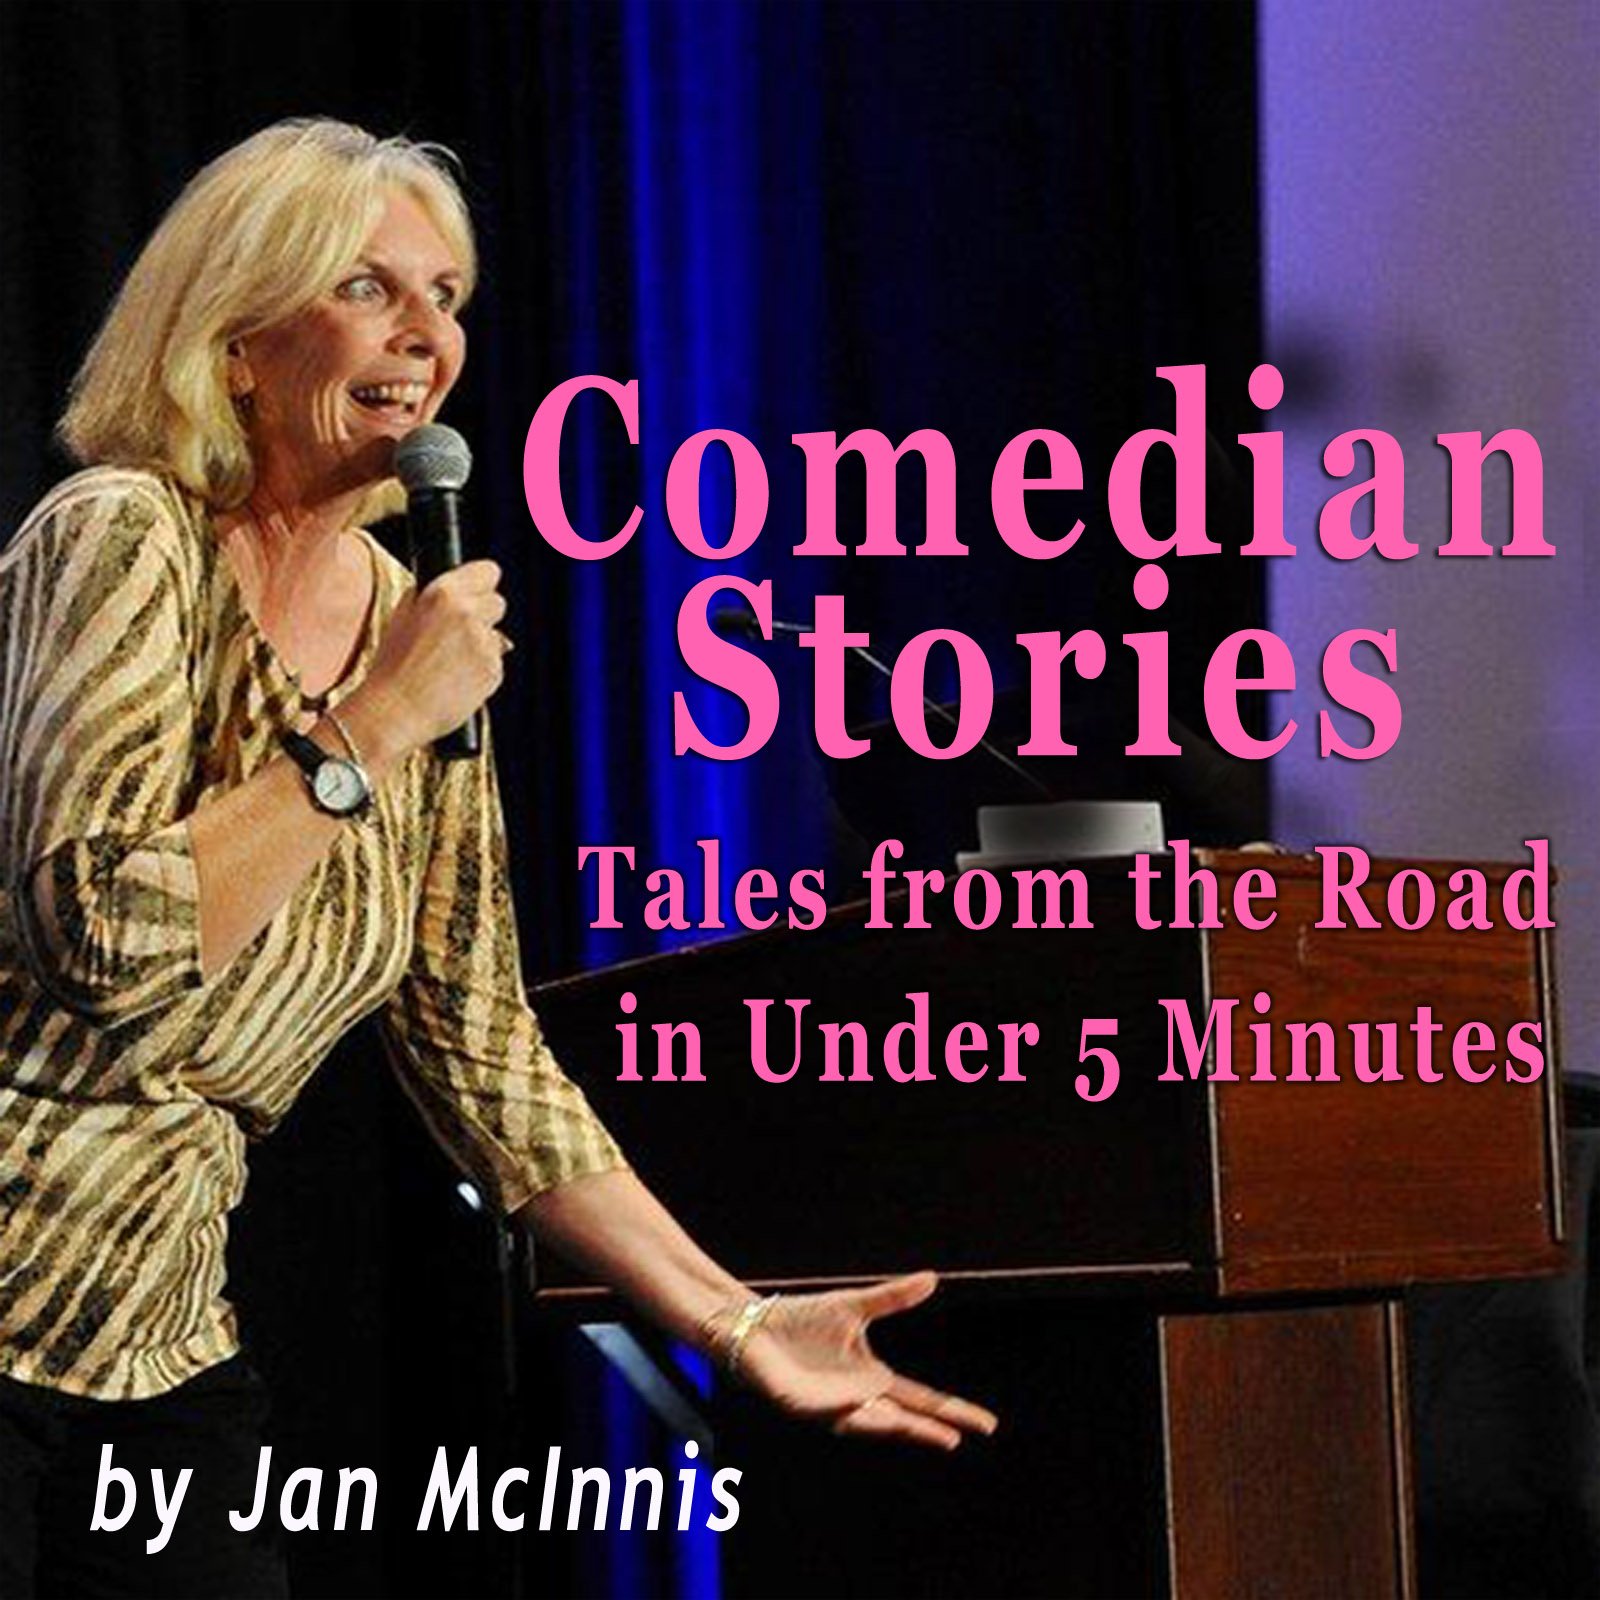 Caption: Tales From the Road in Under 5 Minutes